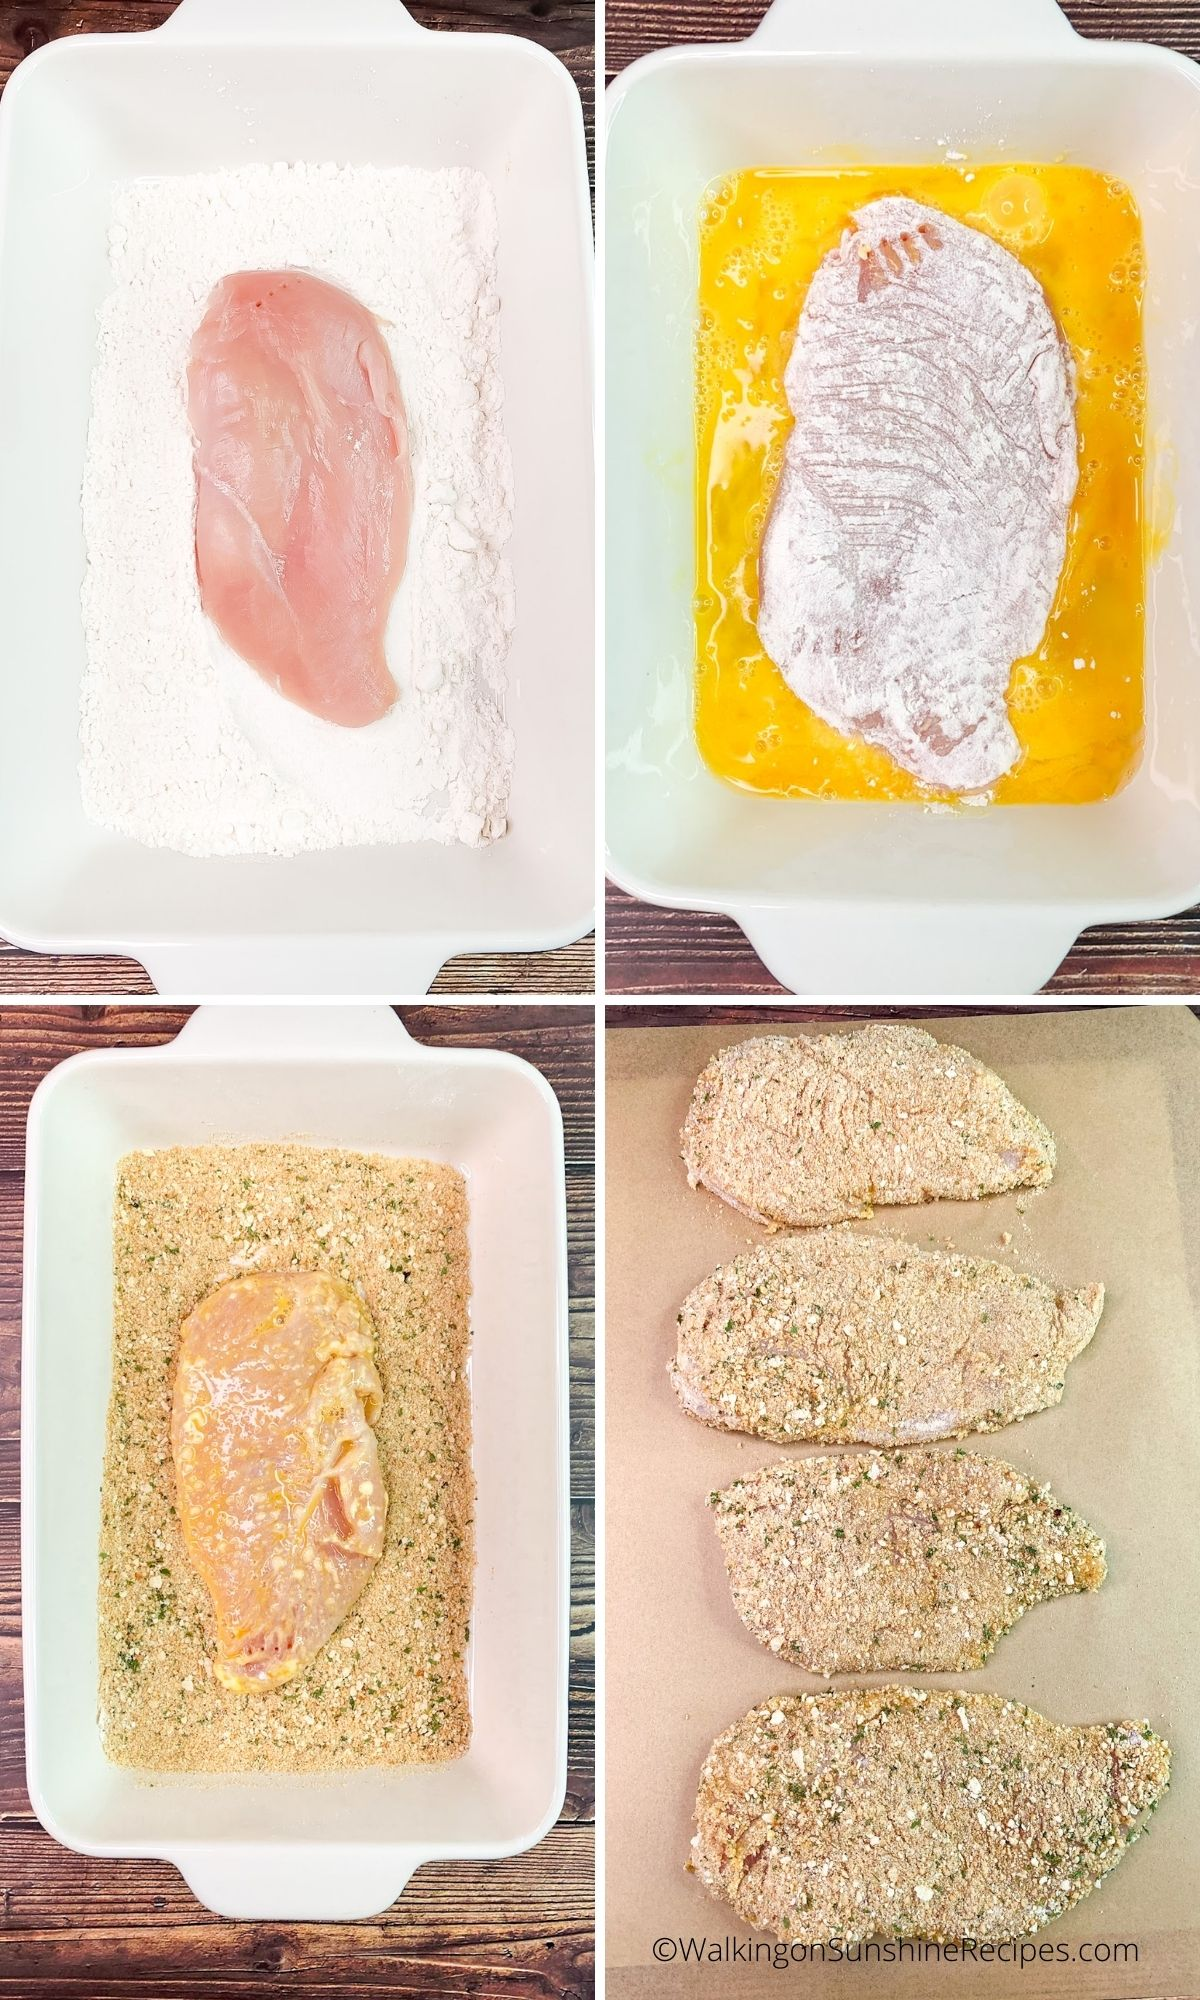 breadcrumbs, flour and egg mixture for chicken.